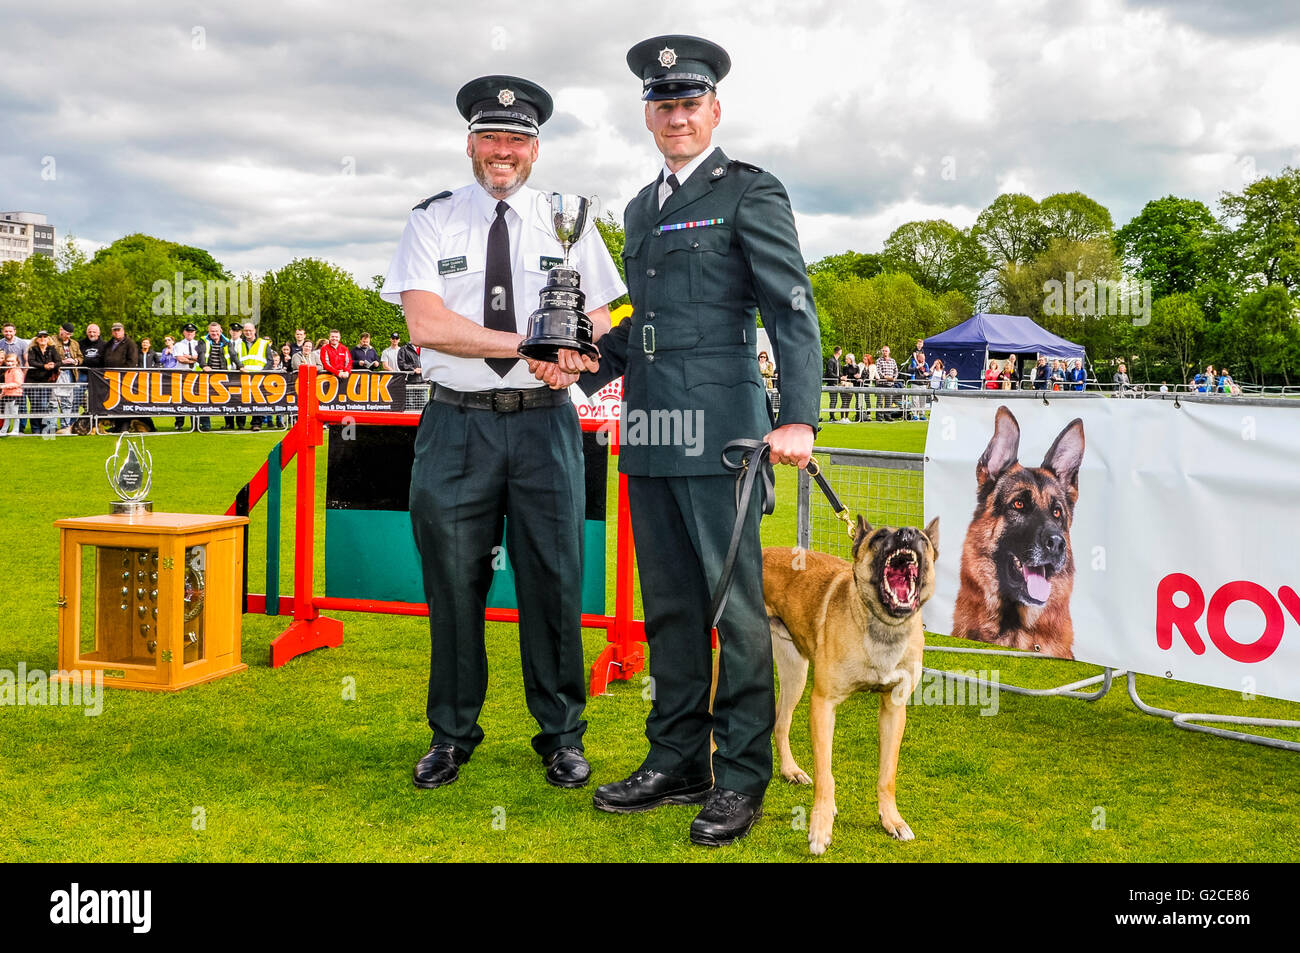 BELFAST, NORTHERN IRELAND. 22 MAY 2016 - PD Finn from the PSNI, with his handler Constable Bradley, who was awarded - Stock Image